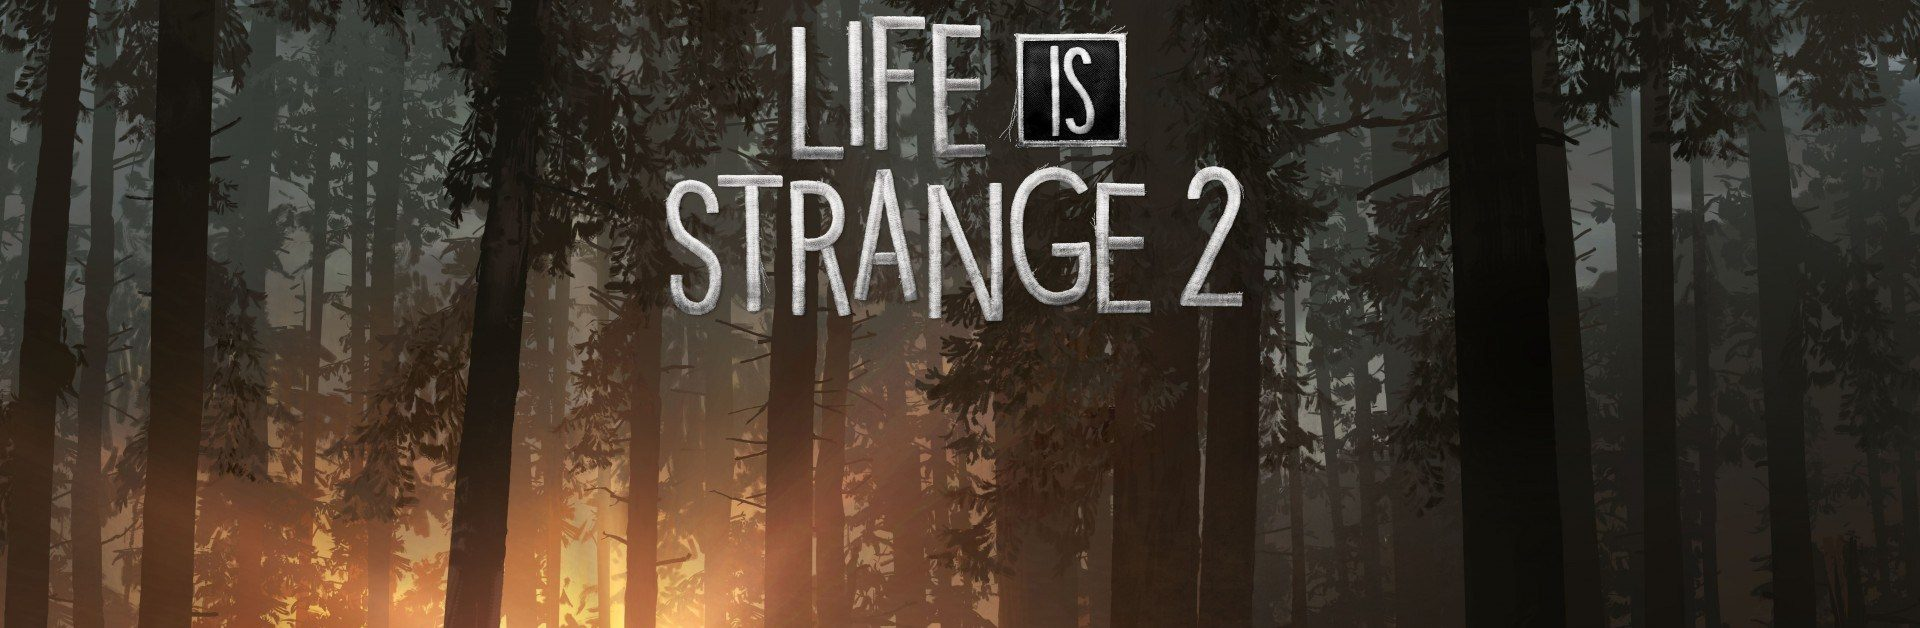 Life Is Strange 2 - Episode 1: Roads Review